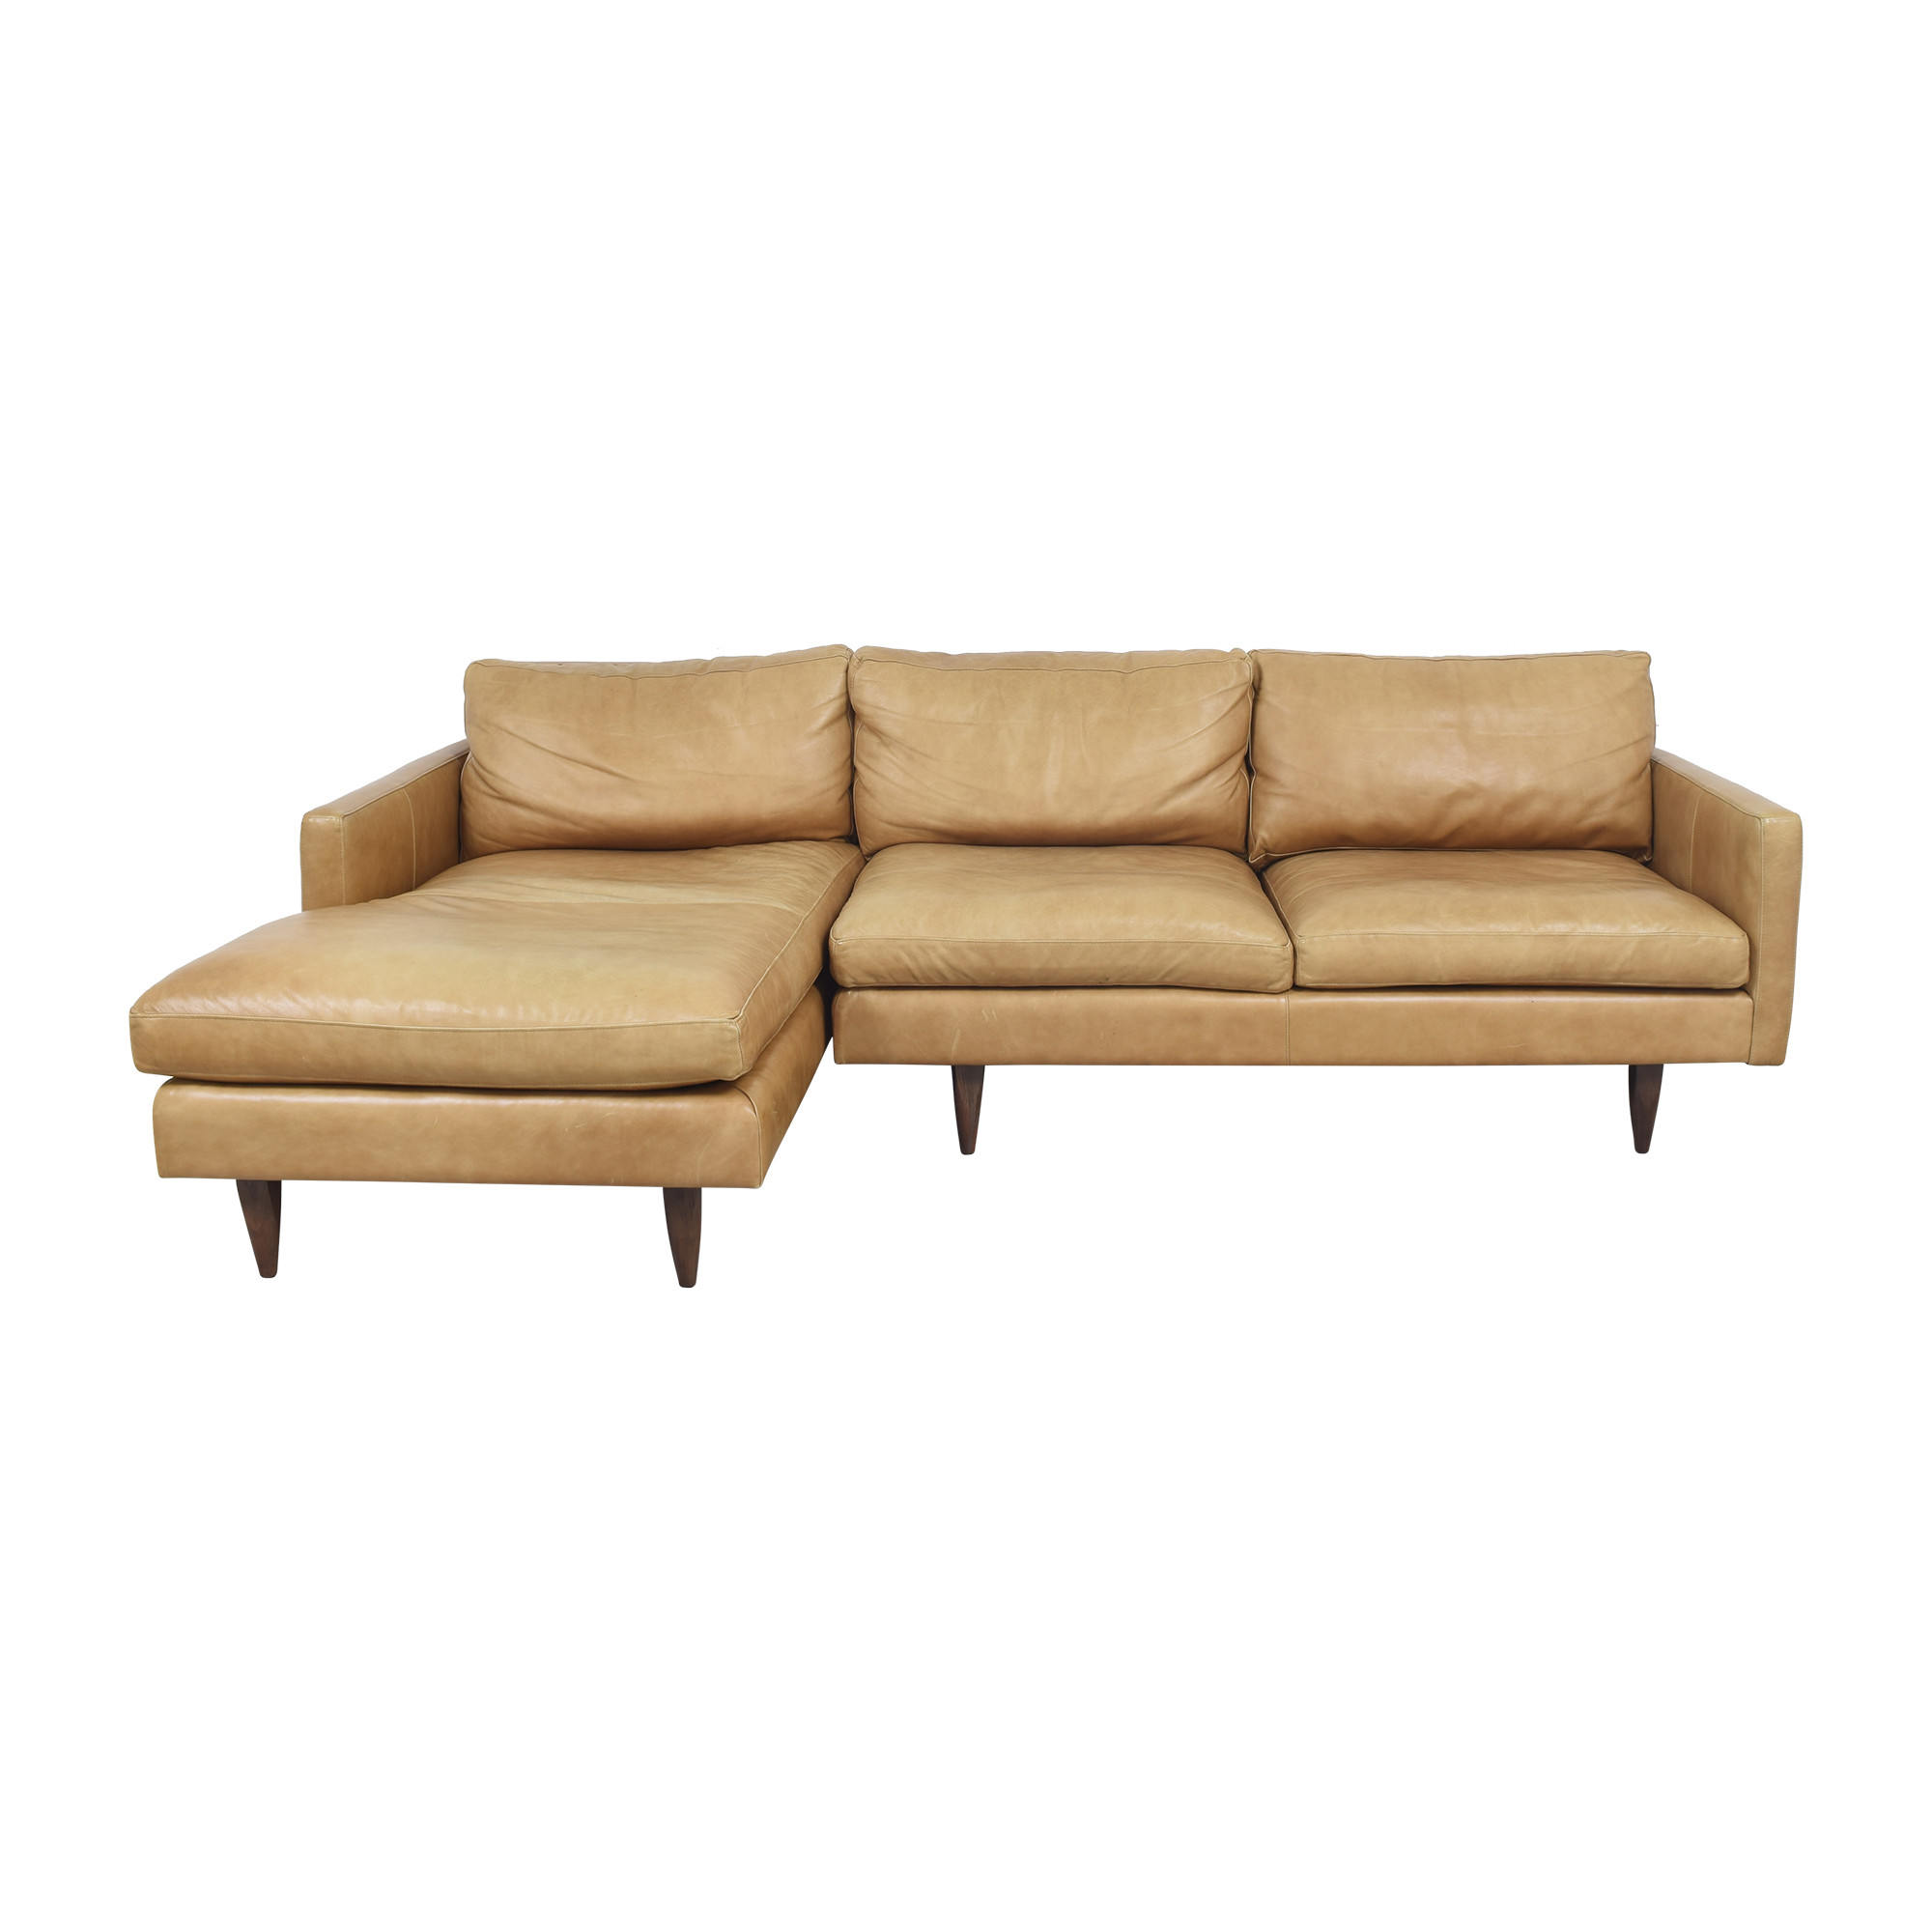 Room & Board Room & Board Jasper Sectional Sofa with Chaise ct